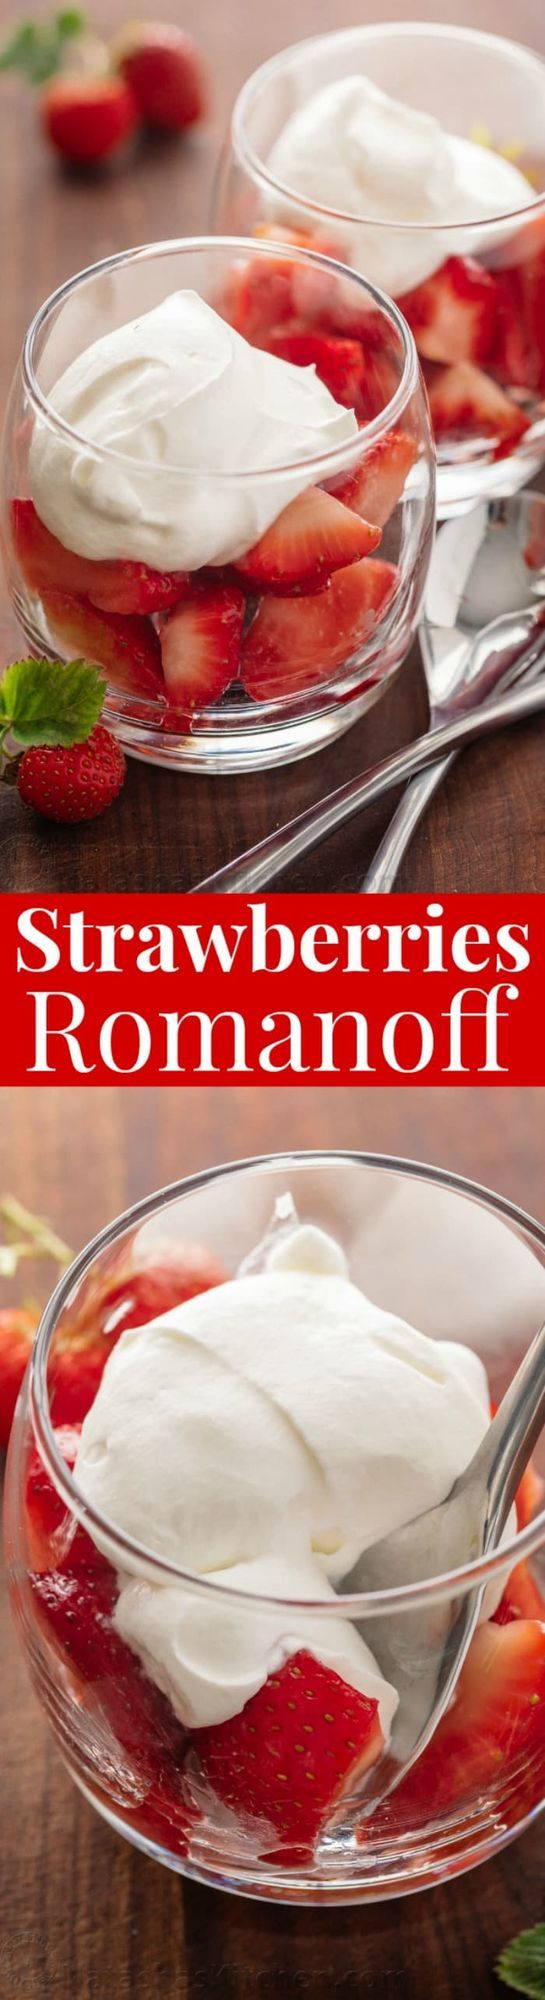 Strawberries Romanoff is a no-bake, easy and luscious summer dessert. It is the adult version of Strawberries and Cream (one of my favorite recipes since childhood). This dessert feels and tastes fanc